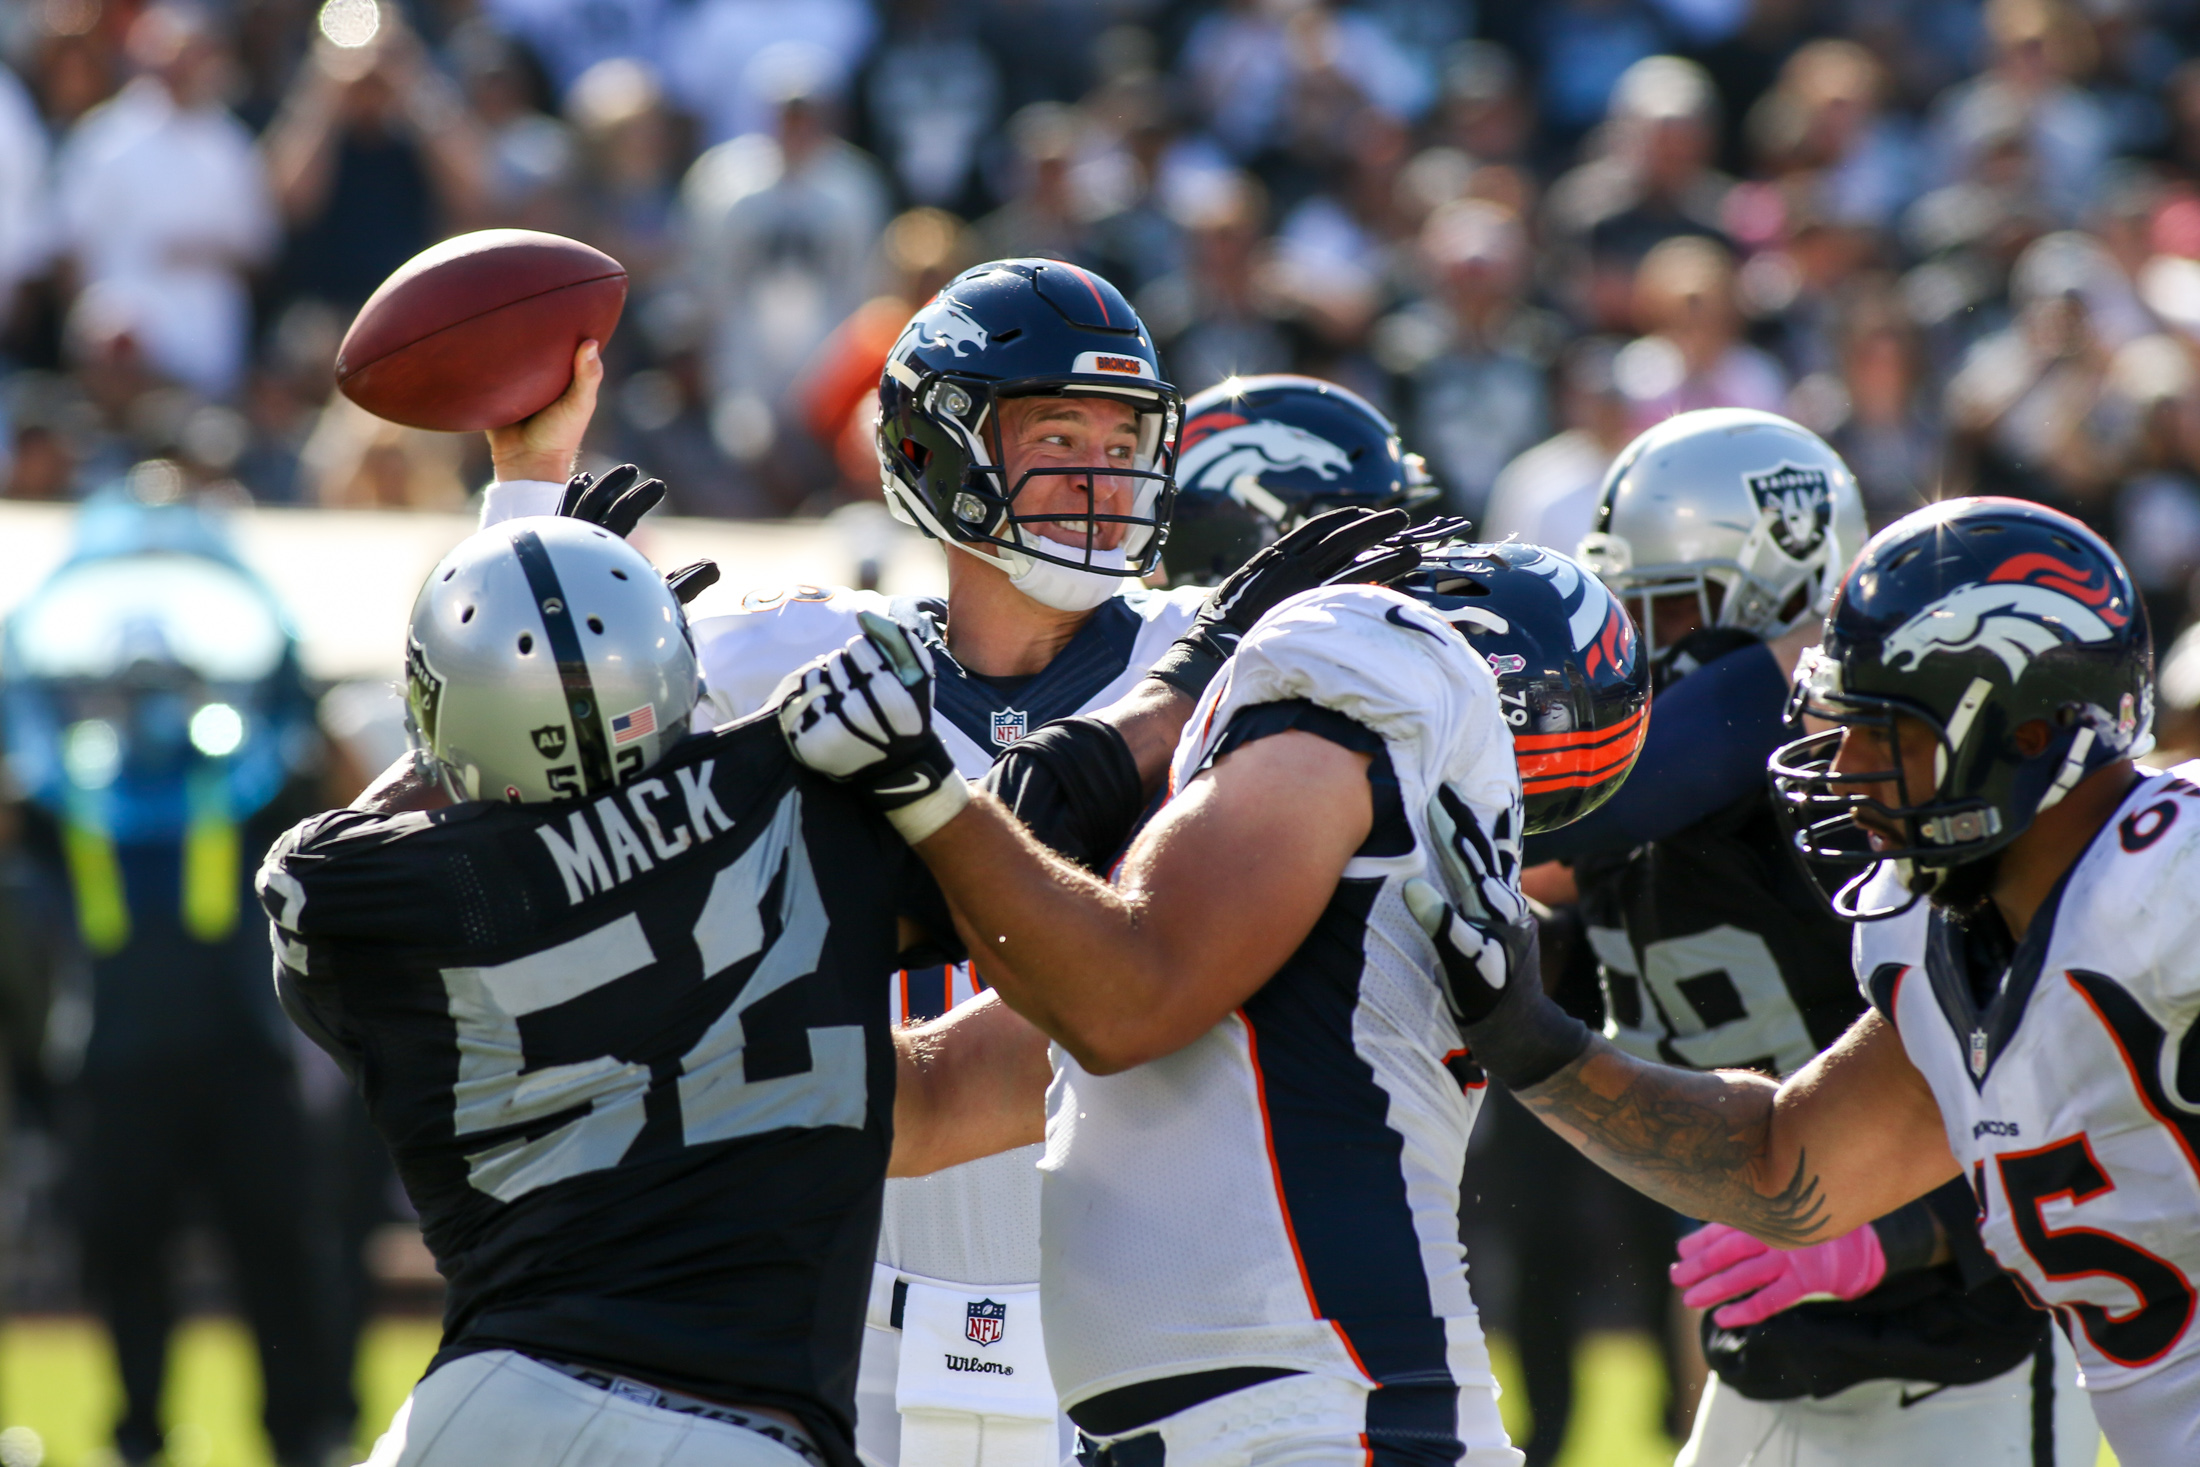 11 October 2015: Denver Broncos quarterback (18) Peyton Manning standing tall in the pocket during an NFL game against the Oakland Raiders at O.co Coliseum in Oakland, CA. The Broncos won 16-10.(Photograph by Jevone Moore / Full Image 360)